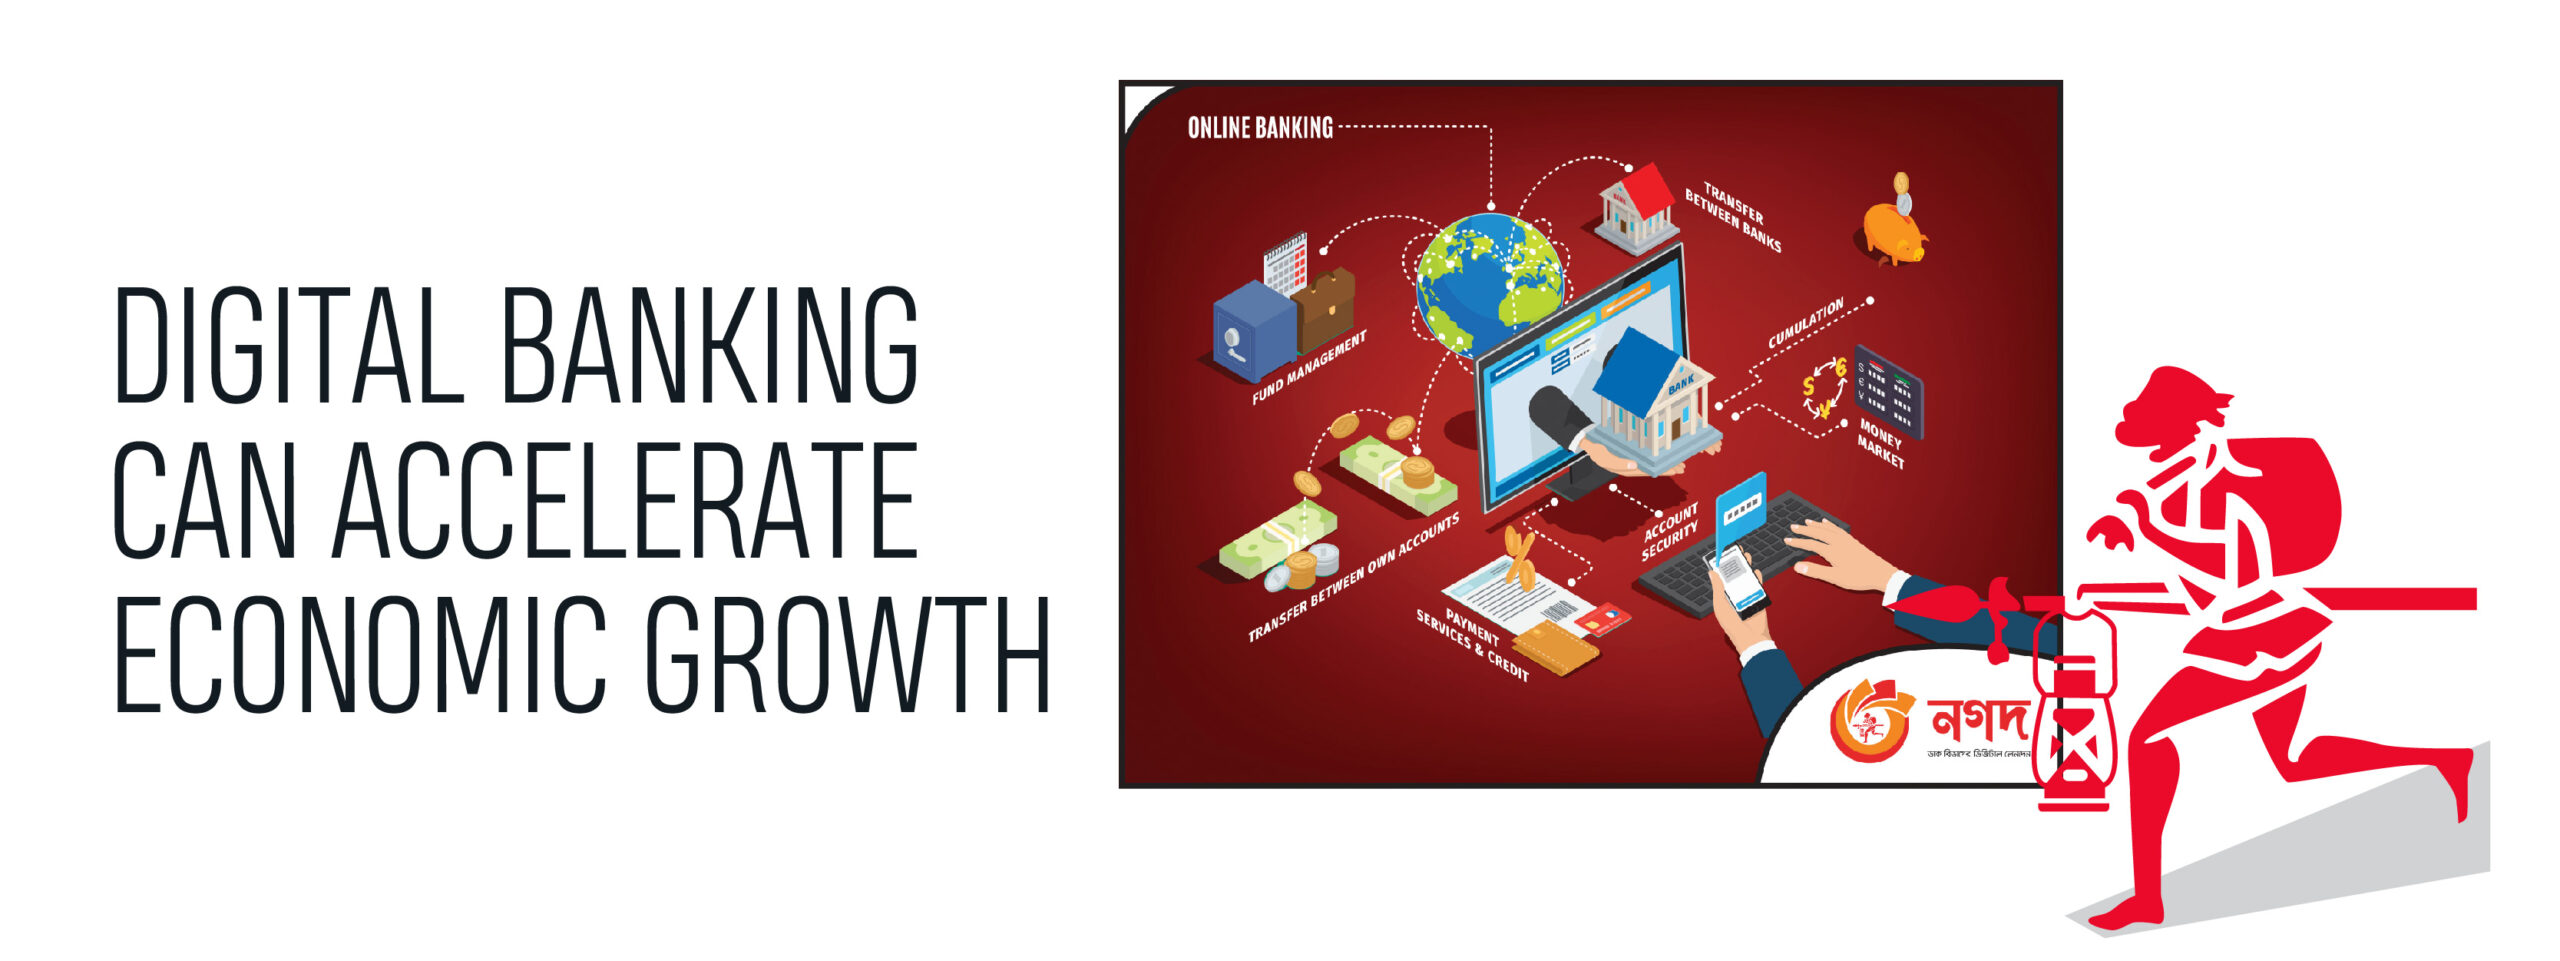 DIGITAL BANKING CAN ACCELERATE ECONOMIC GROWTH